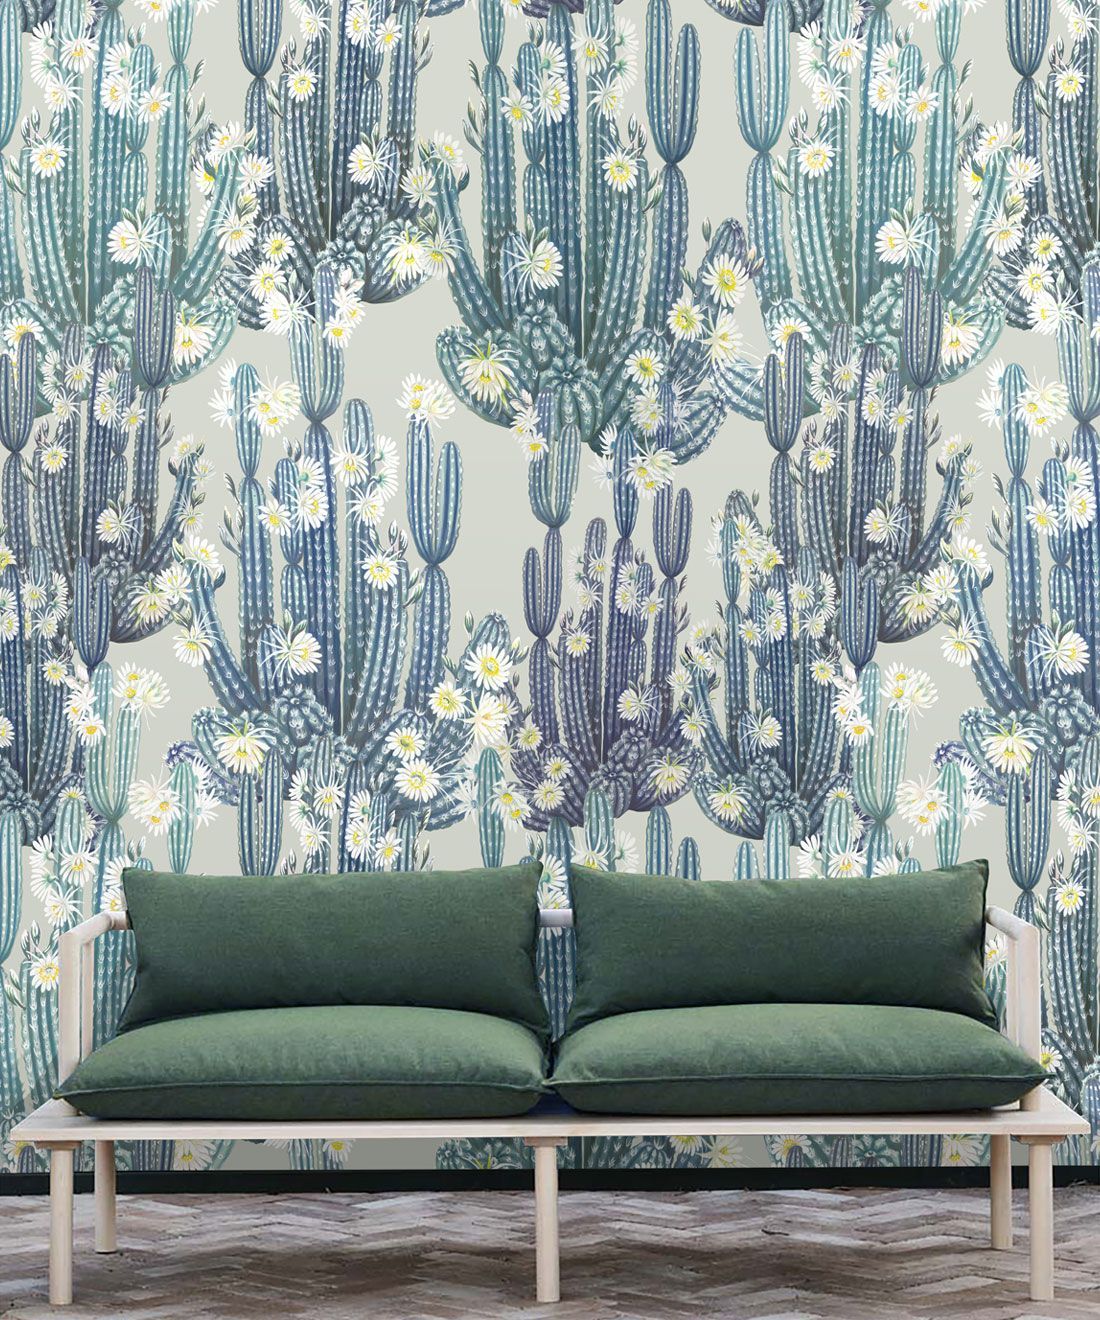 San Pedro Wallpaper Blue • Cactus Wallpaper • Succulents Wallpaper • Desert Wallpaper Insitu behind couch with green cushions